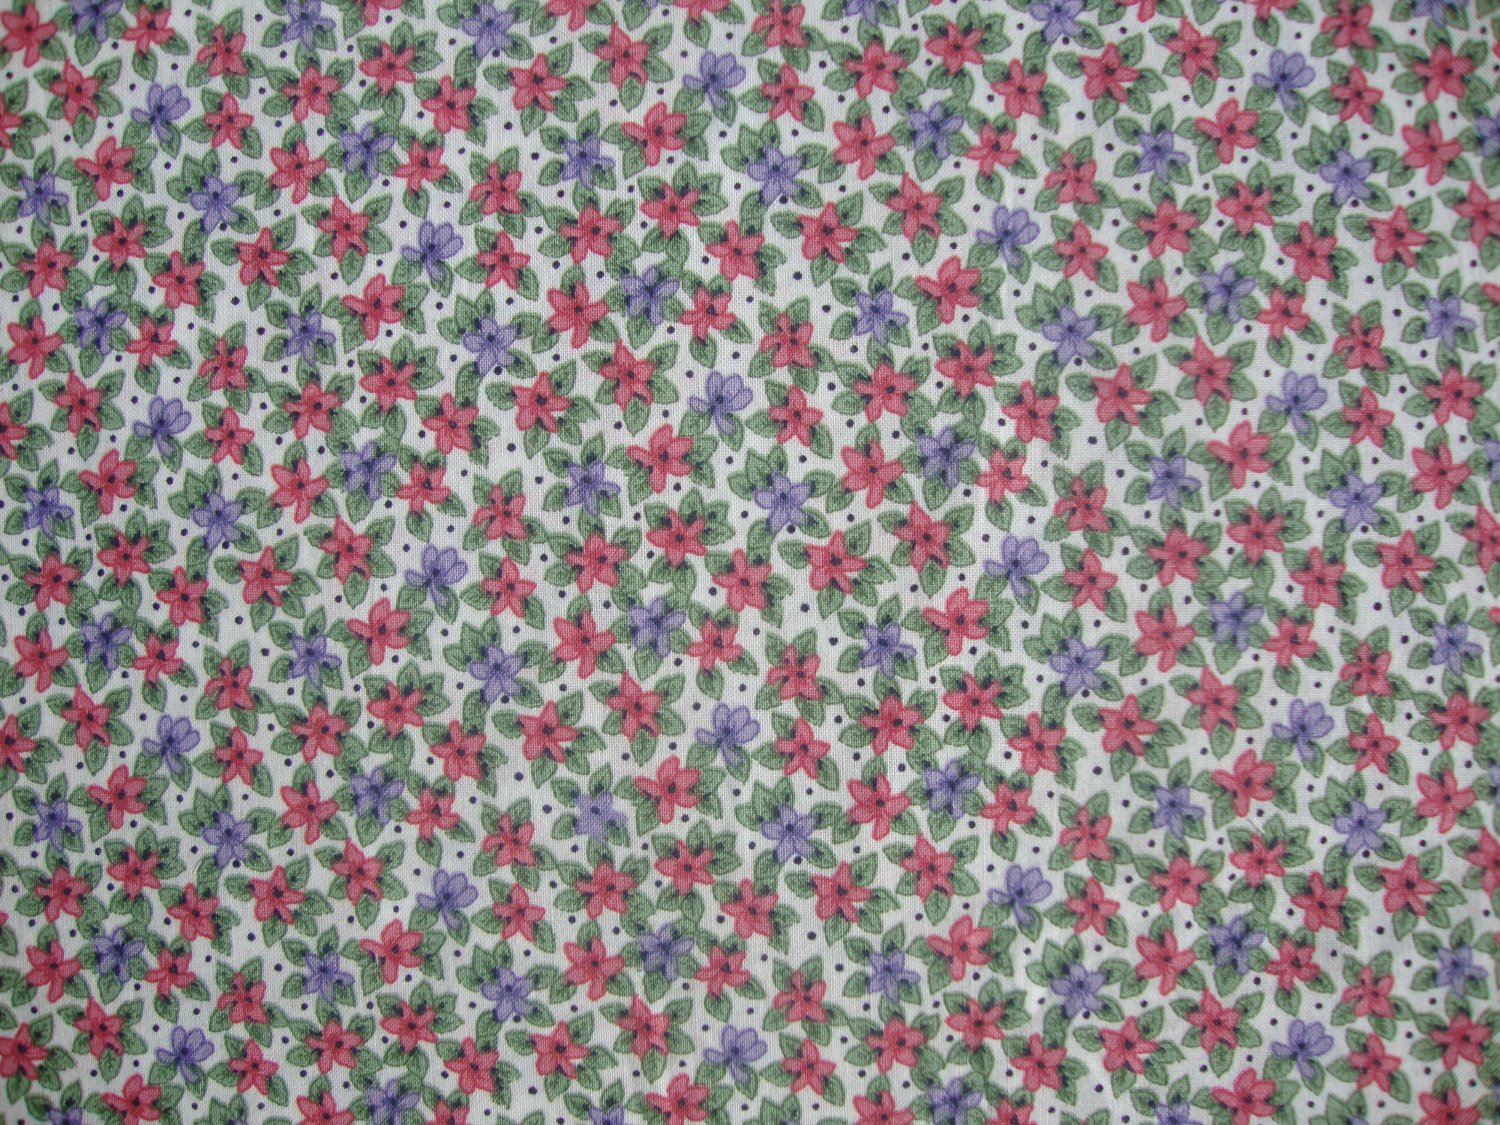 Yard red purple calico flowers on white cotton